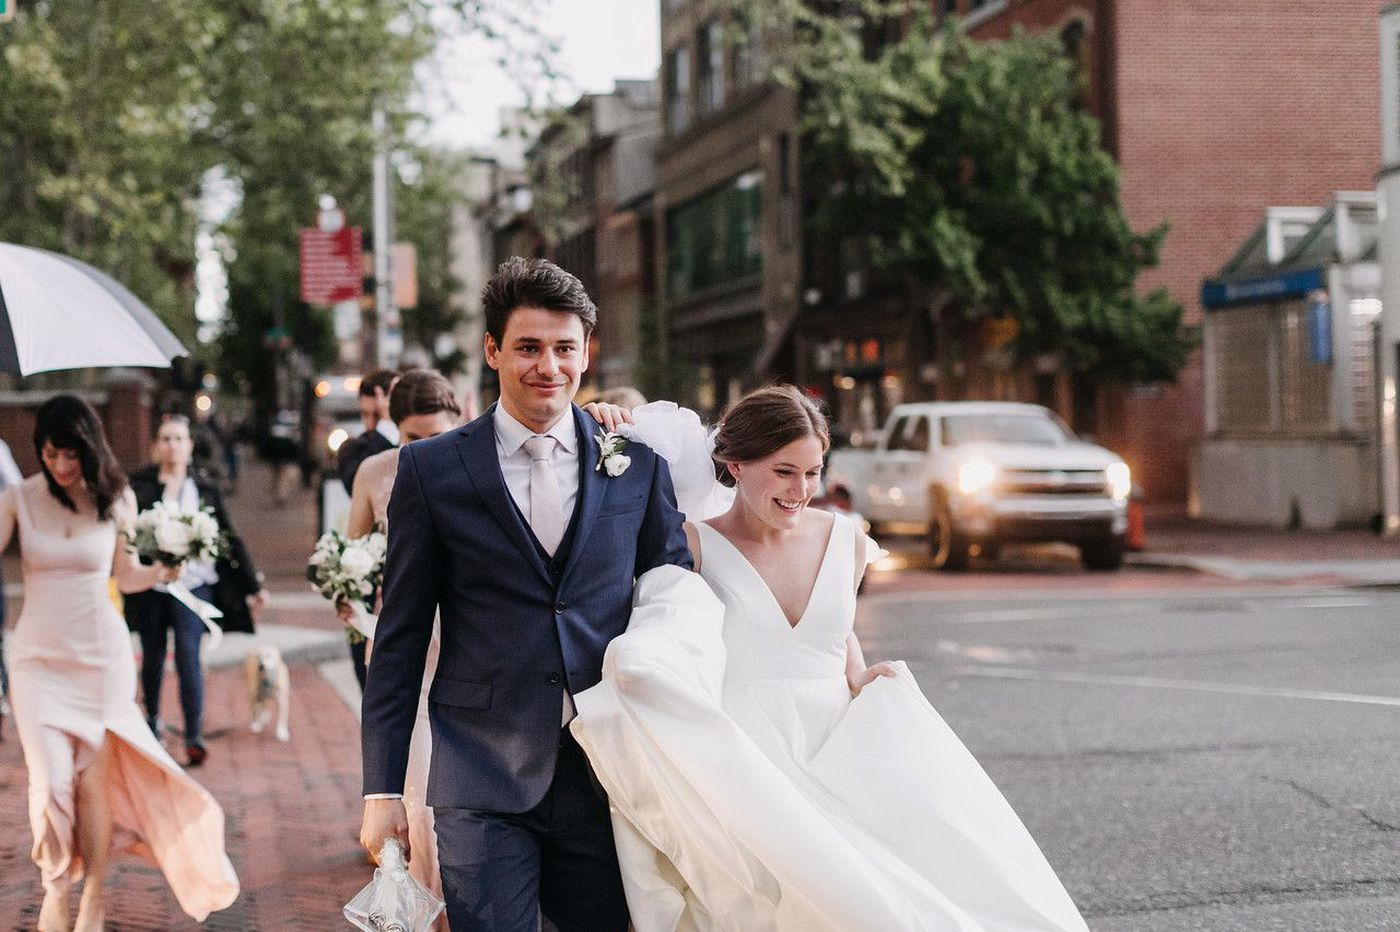 Philadelphia weddings: Bridget McGeehan and Matthew Habermann